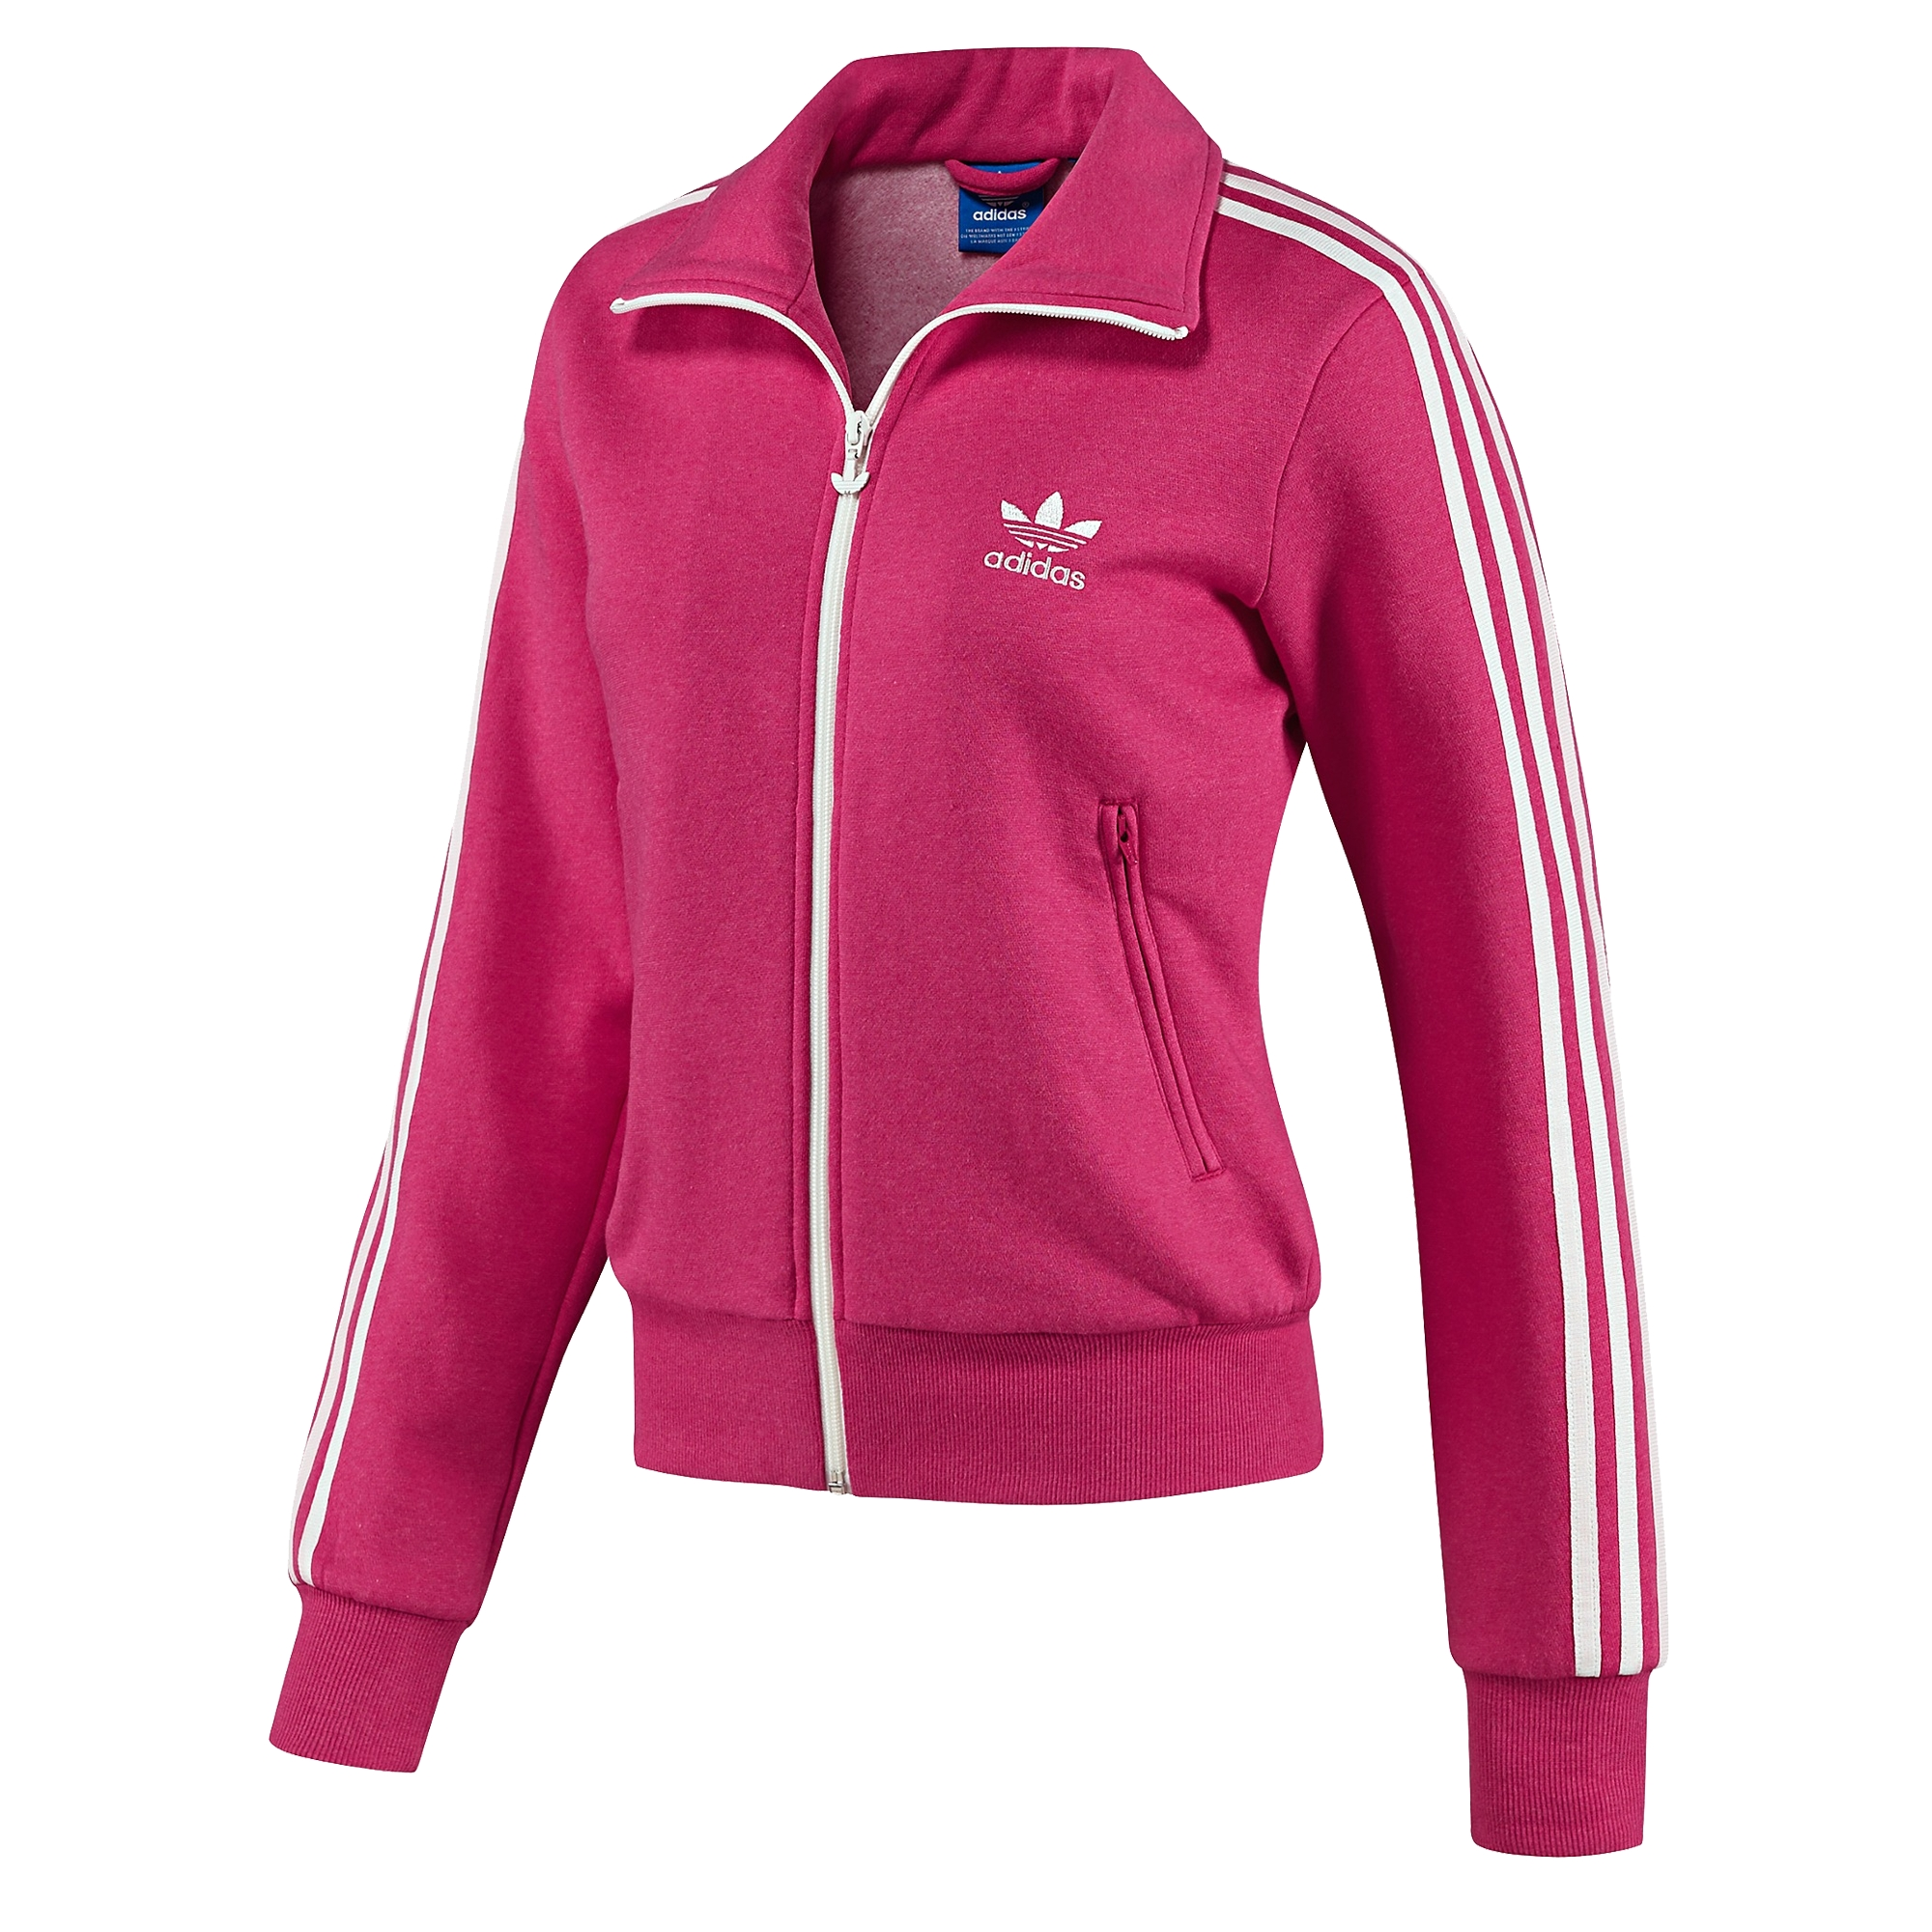 adidas firebird tt tracktop damen jacke gruen gold pictures to pin on. Black Bedroom Furniture Sets. Home Design Ideas